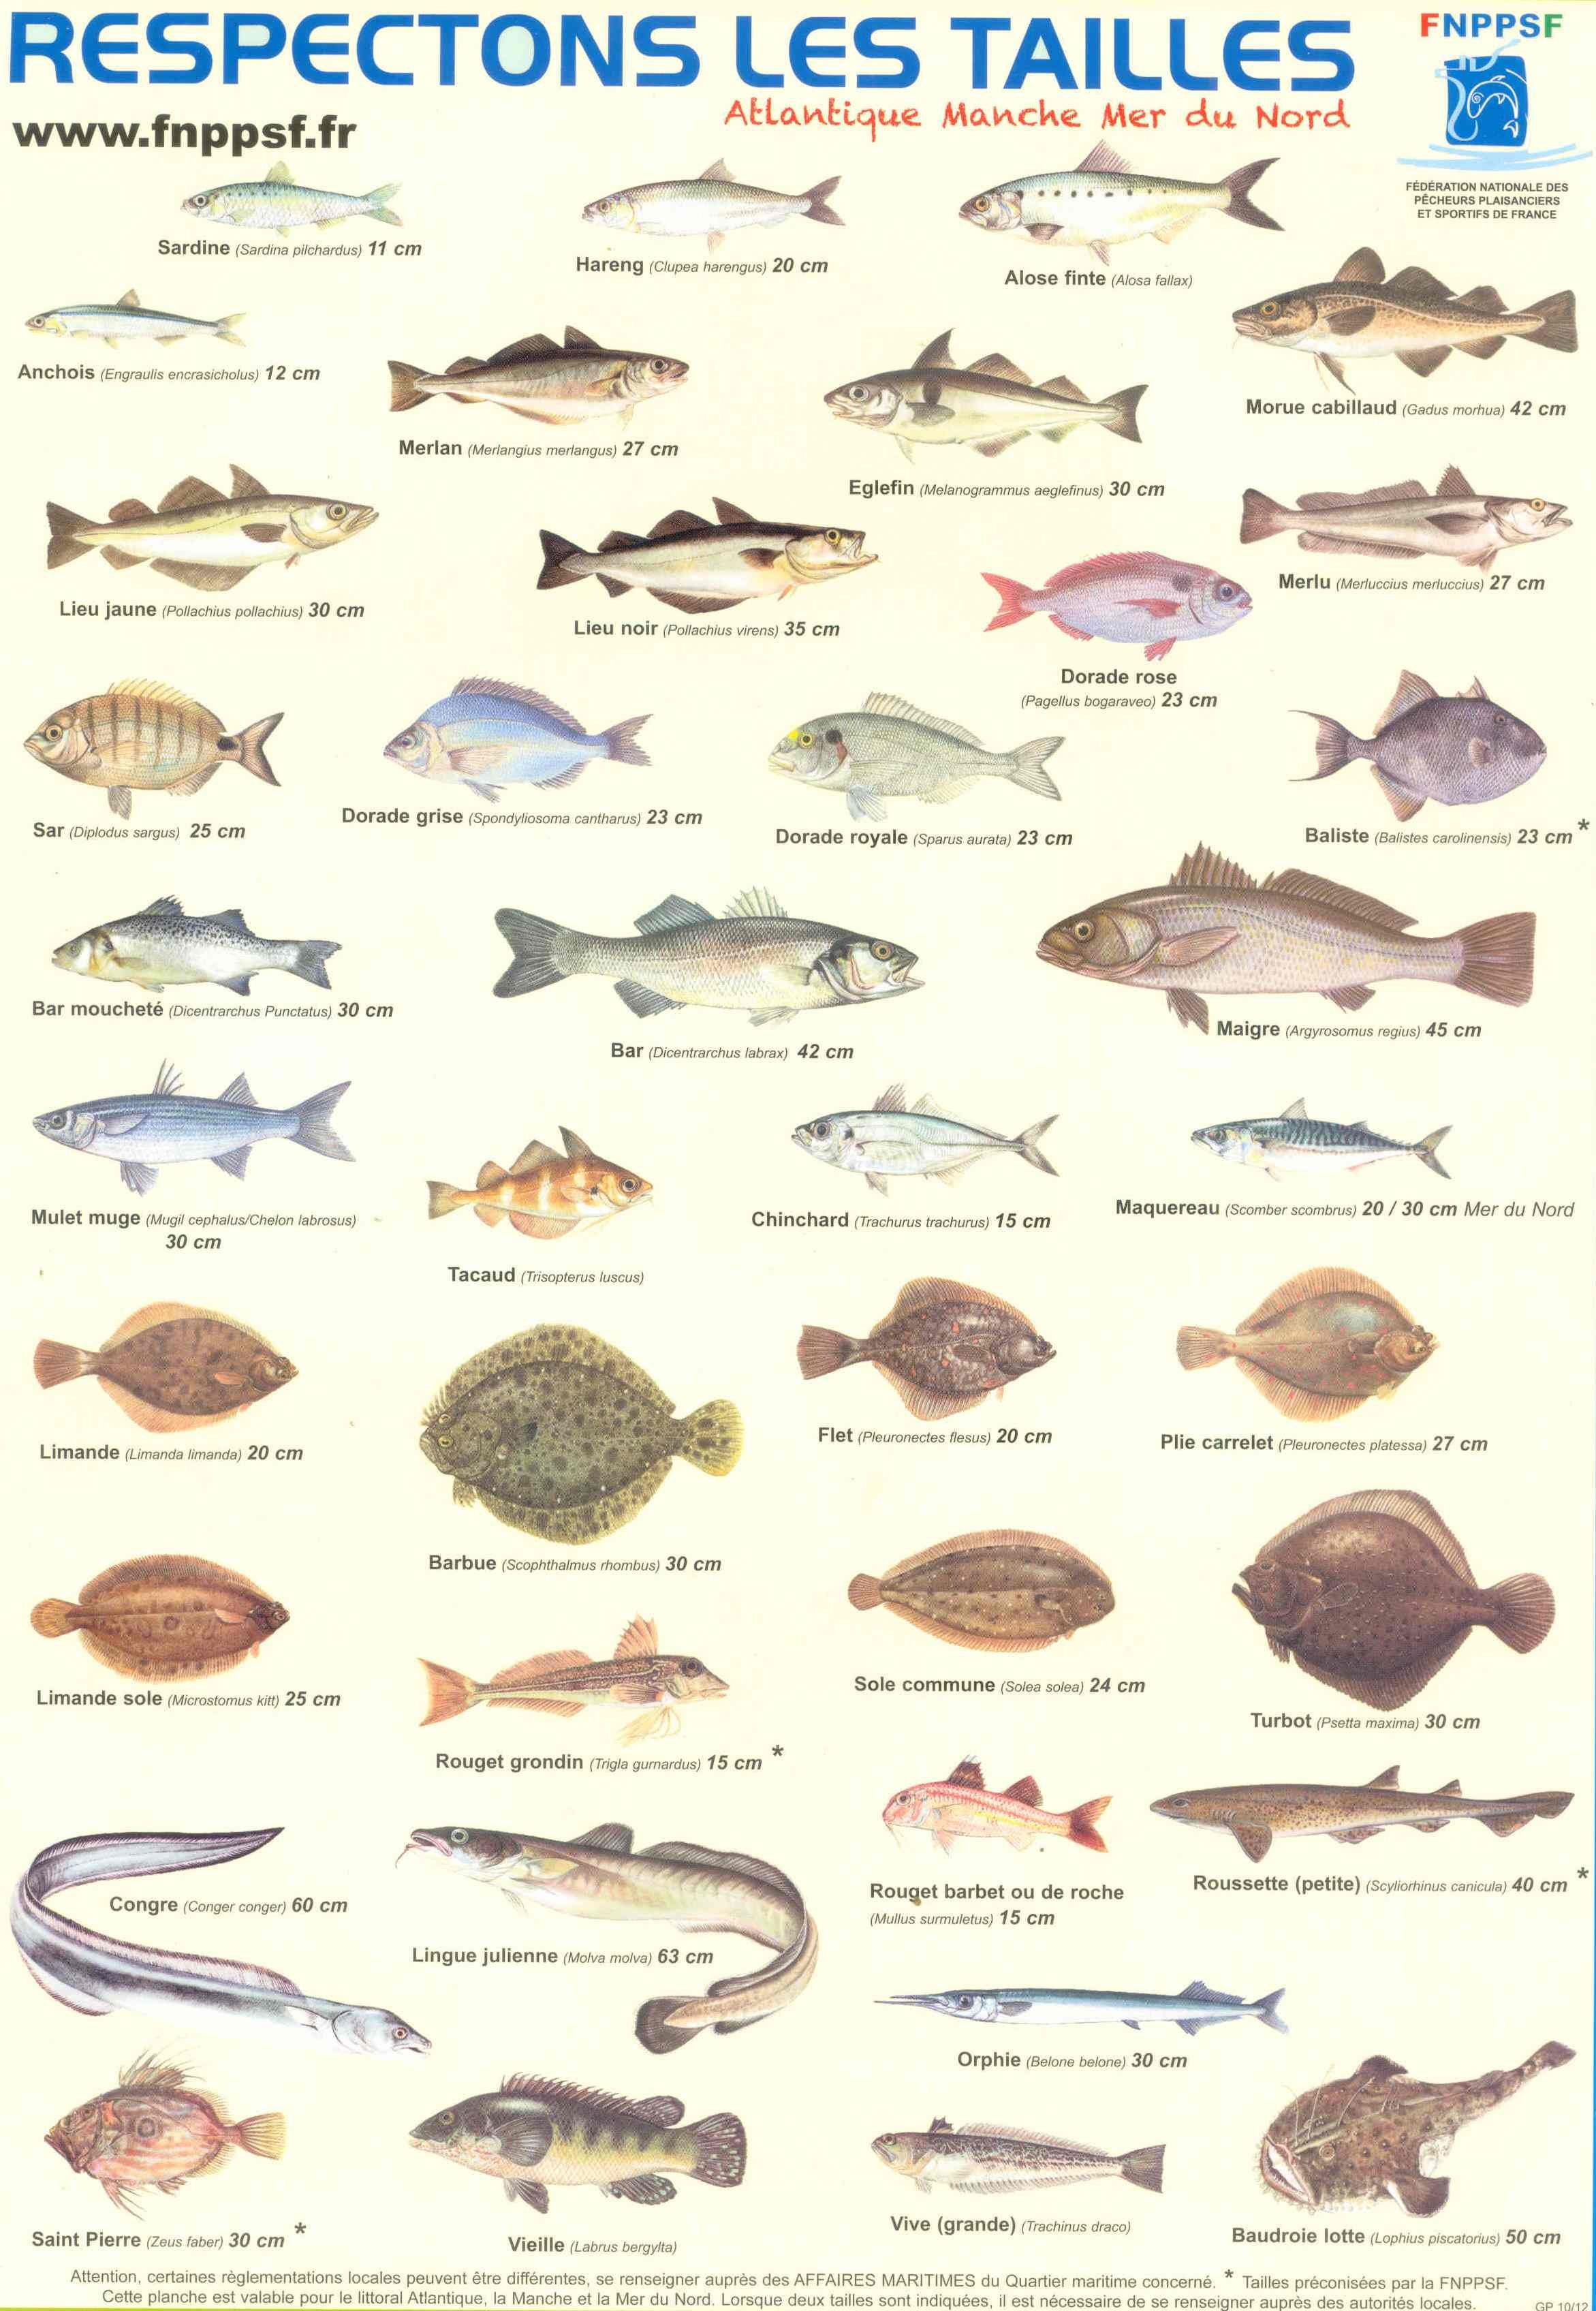 Afficher l 39 image d 39 origine peche poissons pinterest poissons p che et images - Grand poisson de mer ...